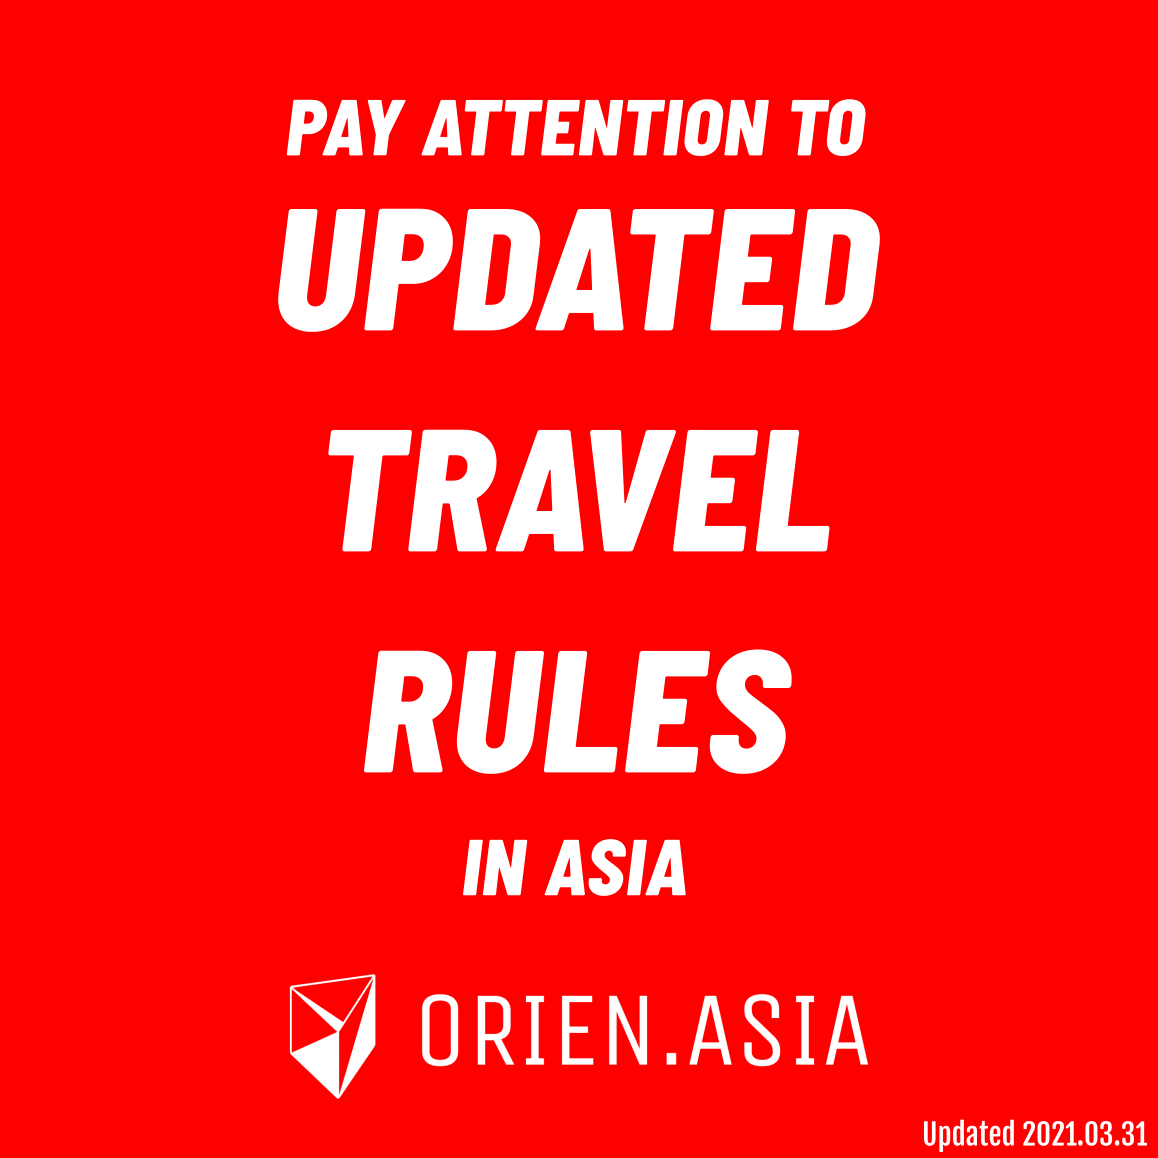 Pay attention to updated travel rules in Thailand and Nepal